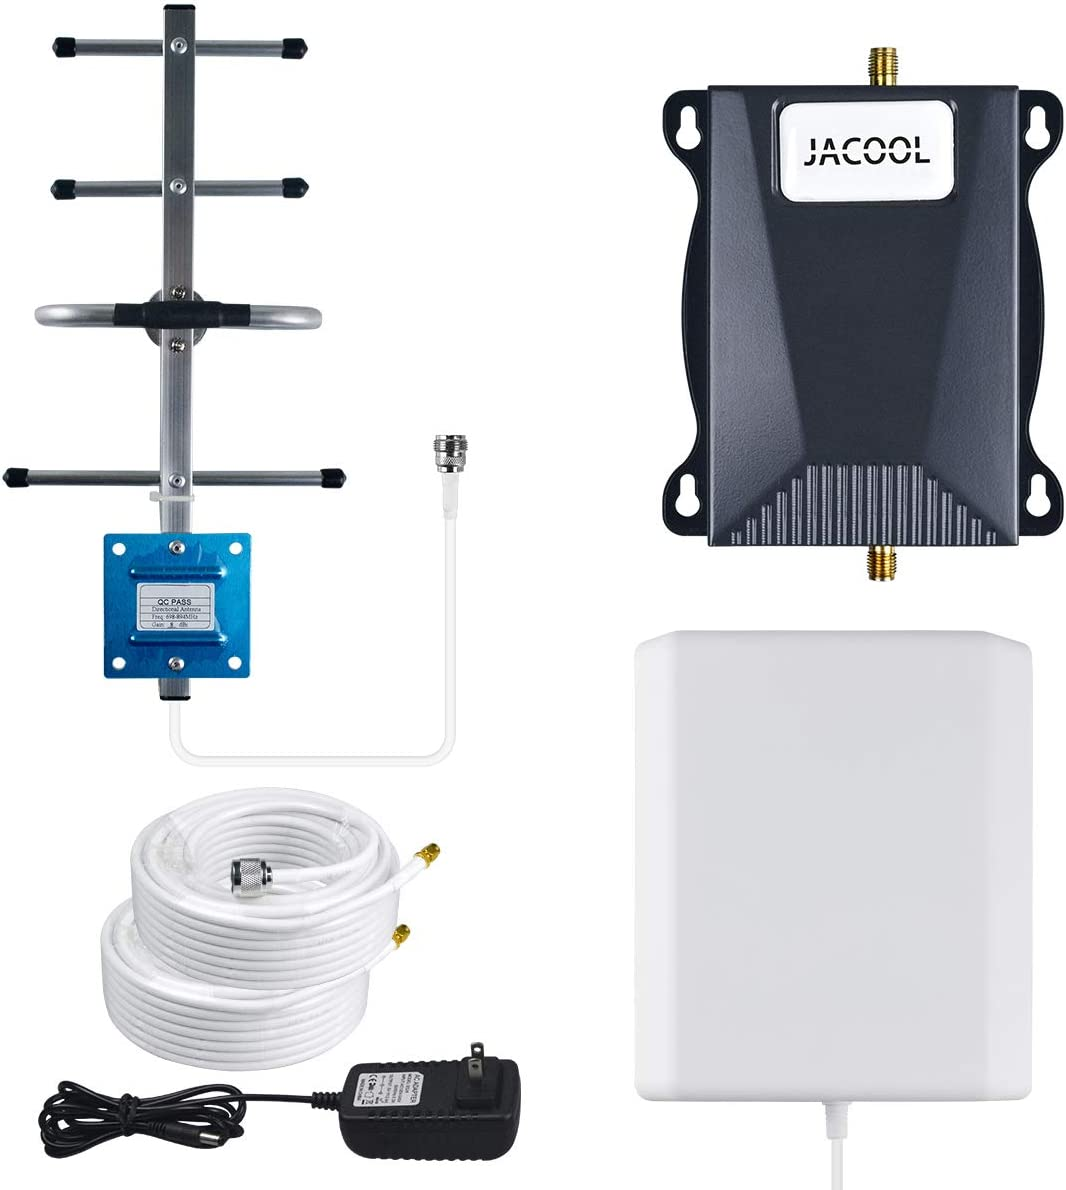 Verizon Cell Phone Signal Booster 4G LTE Cellular Signal Booster Verizon Cell Phone Booster Band 13 700MHz Signal Amplifier Repeater Verizon Extenders Signal Booster for Home - Boost 4G Data & Voice